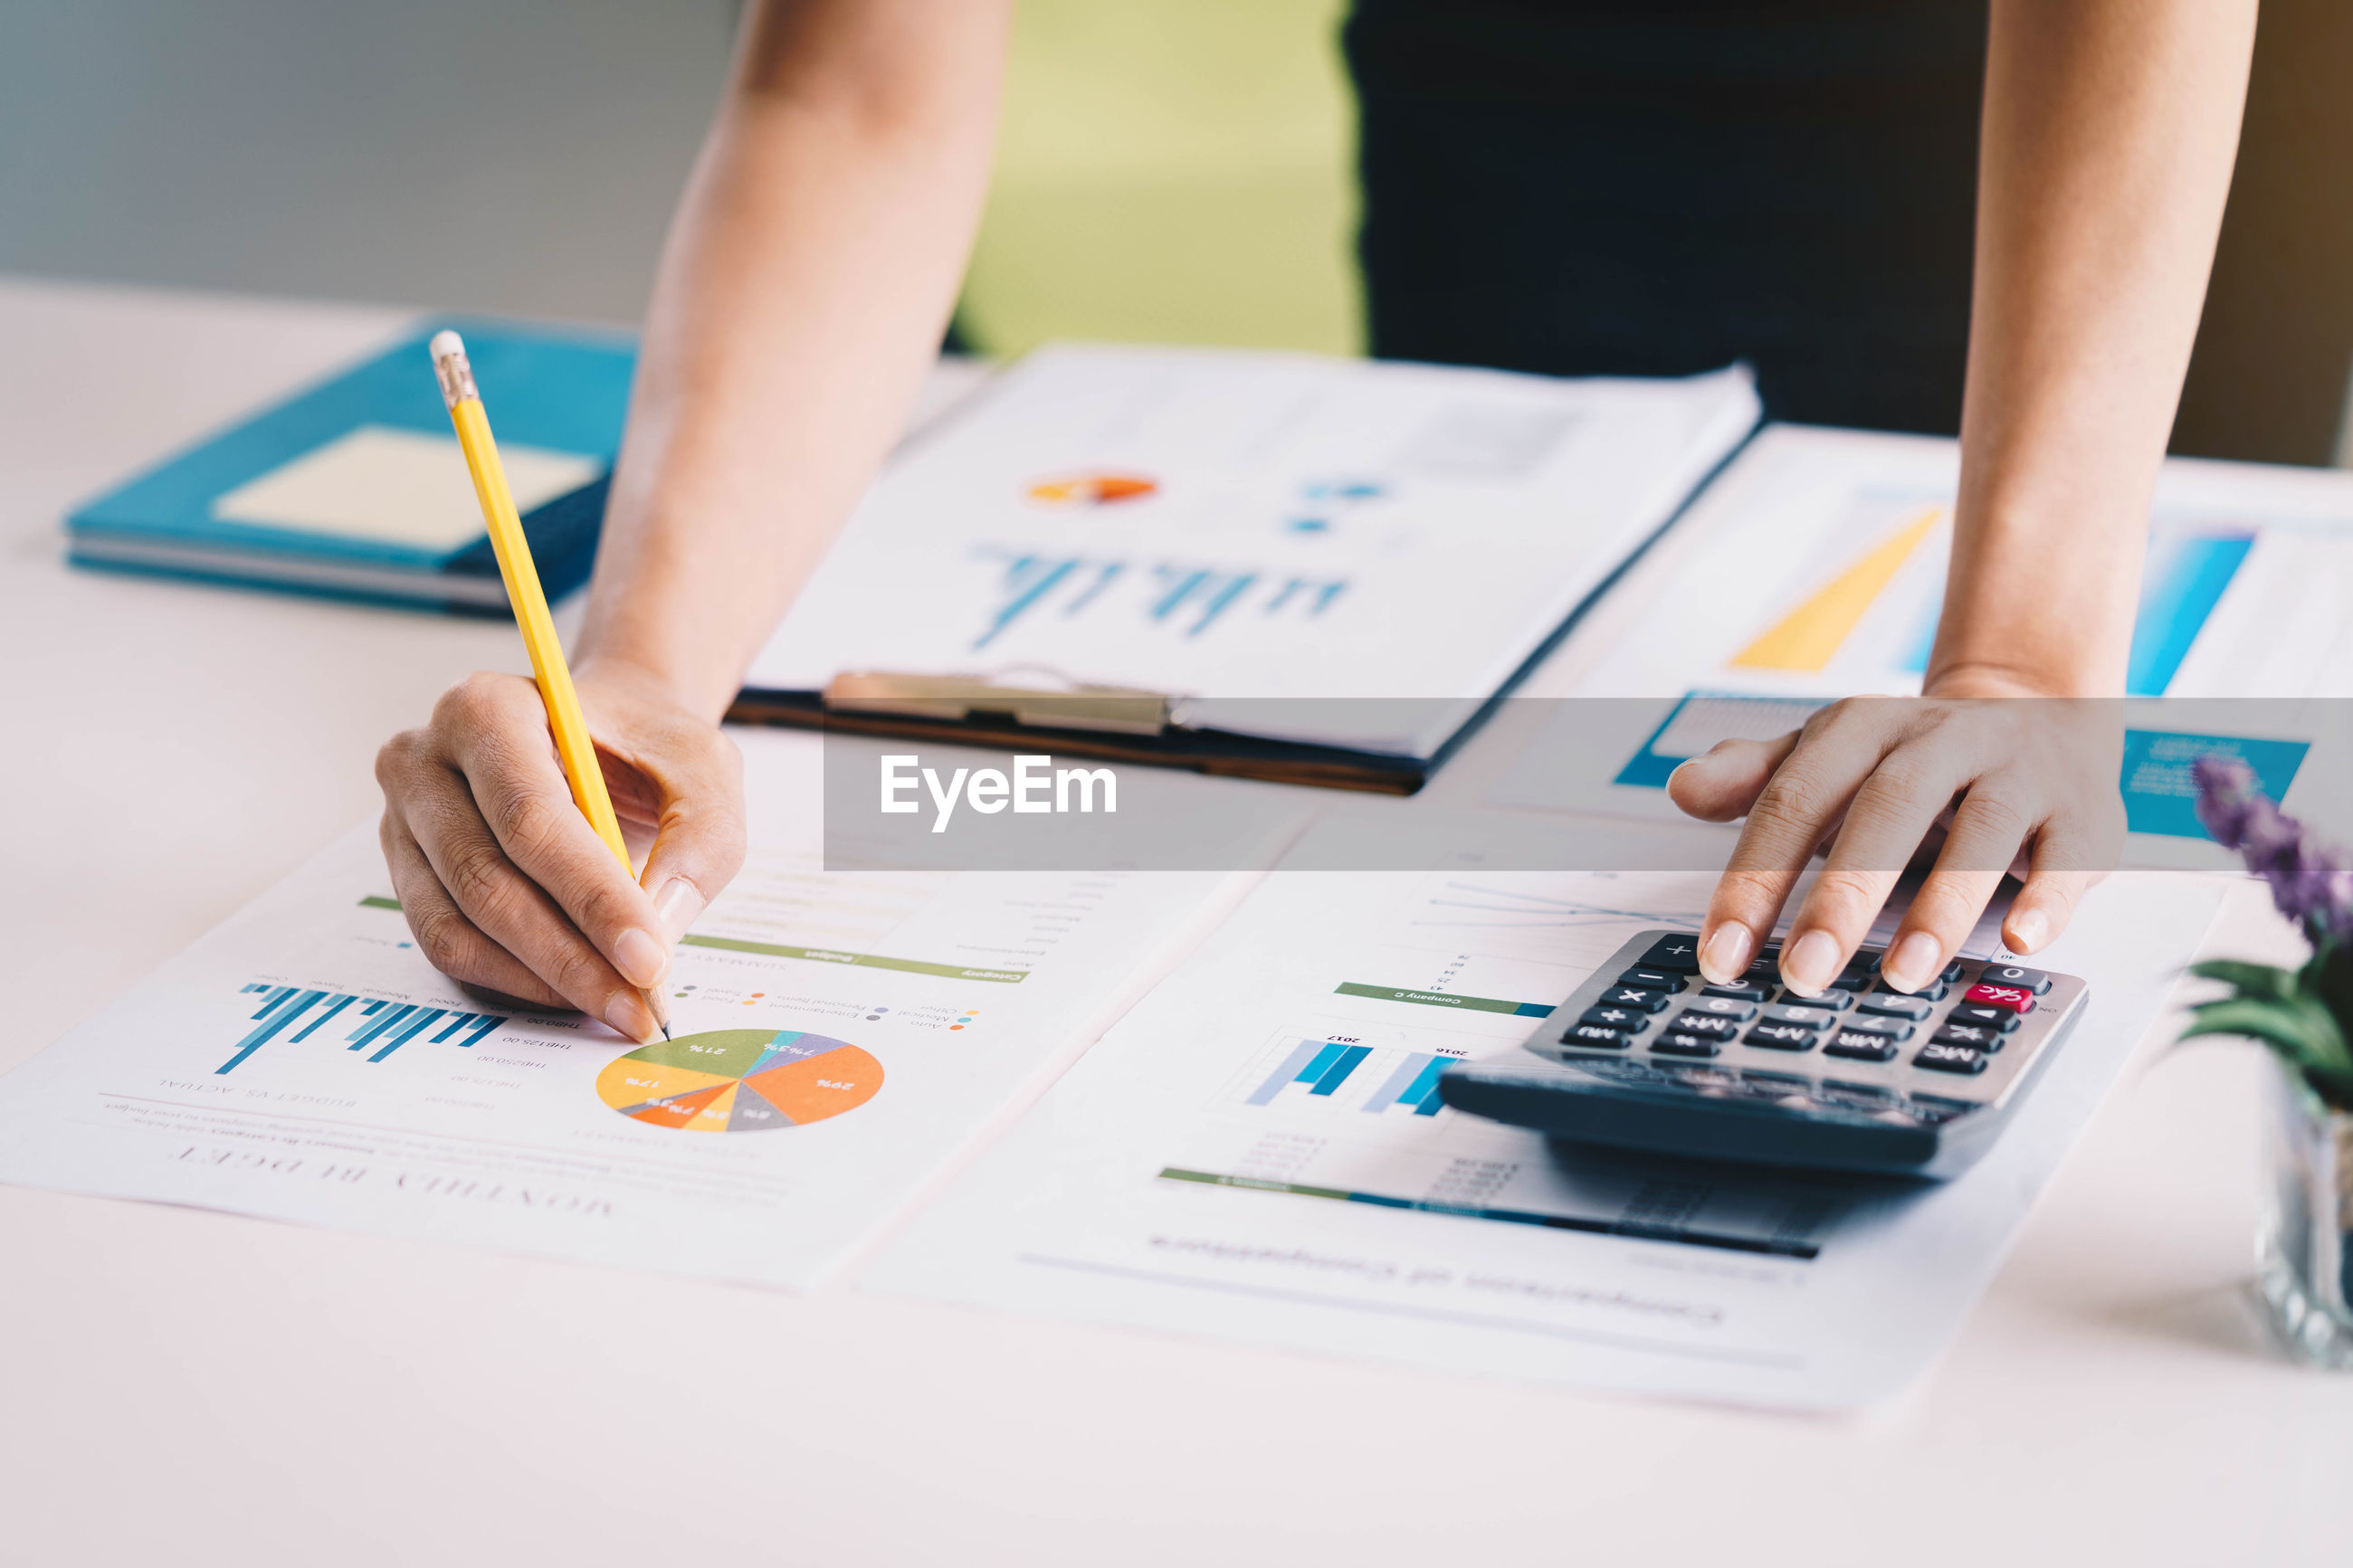 Midsection of businesswoman writing on graph at desk in office